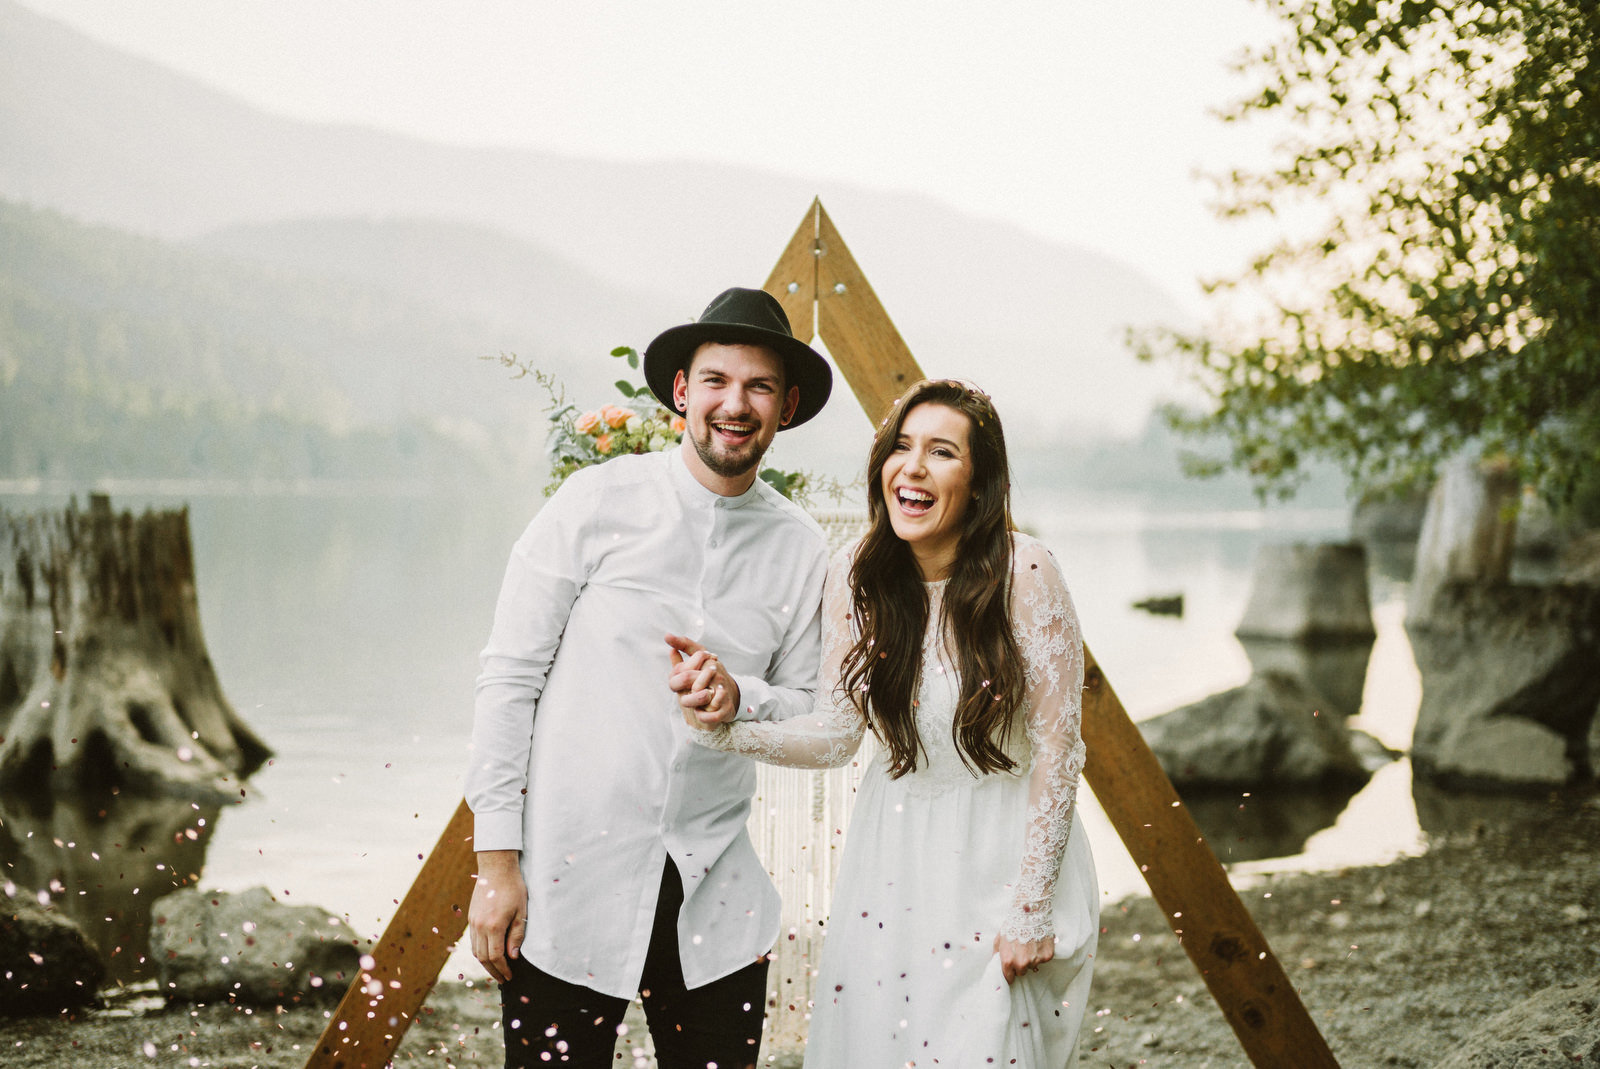 athena-and-camron-seattle-elopement-wedding-benj-haisch-rattlesnake-lake-christian-couple-goals65